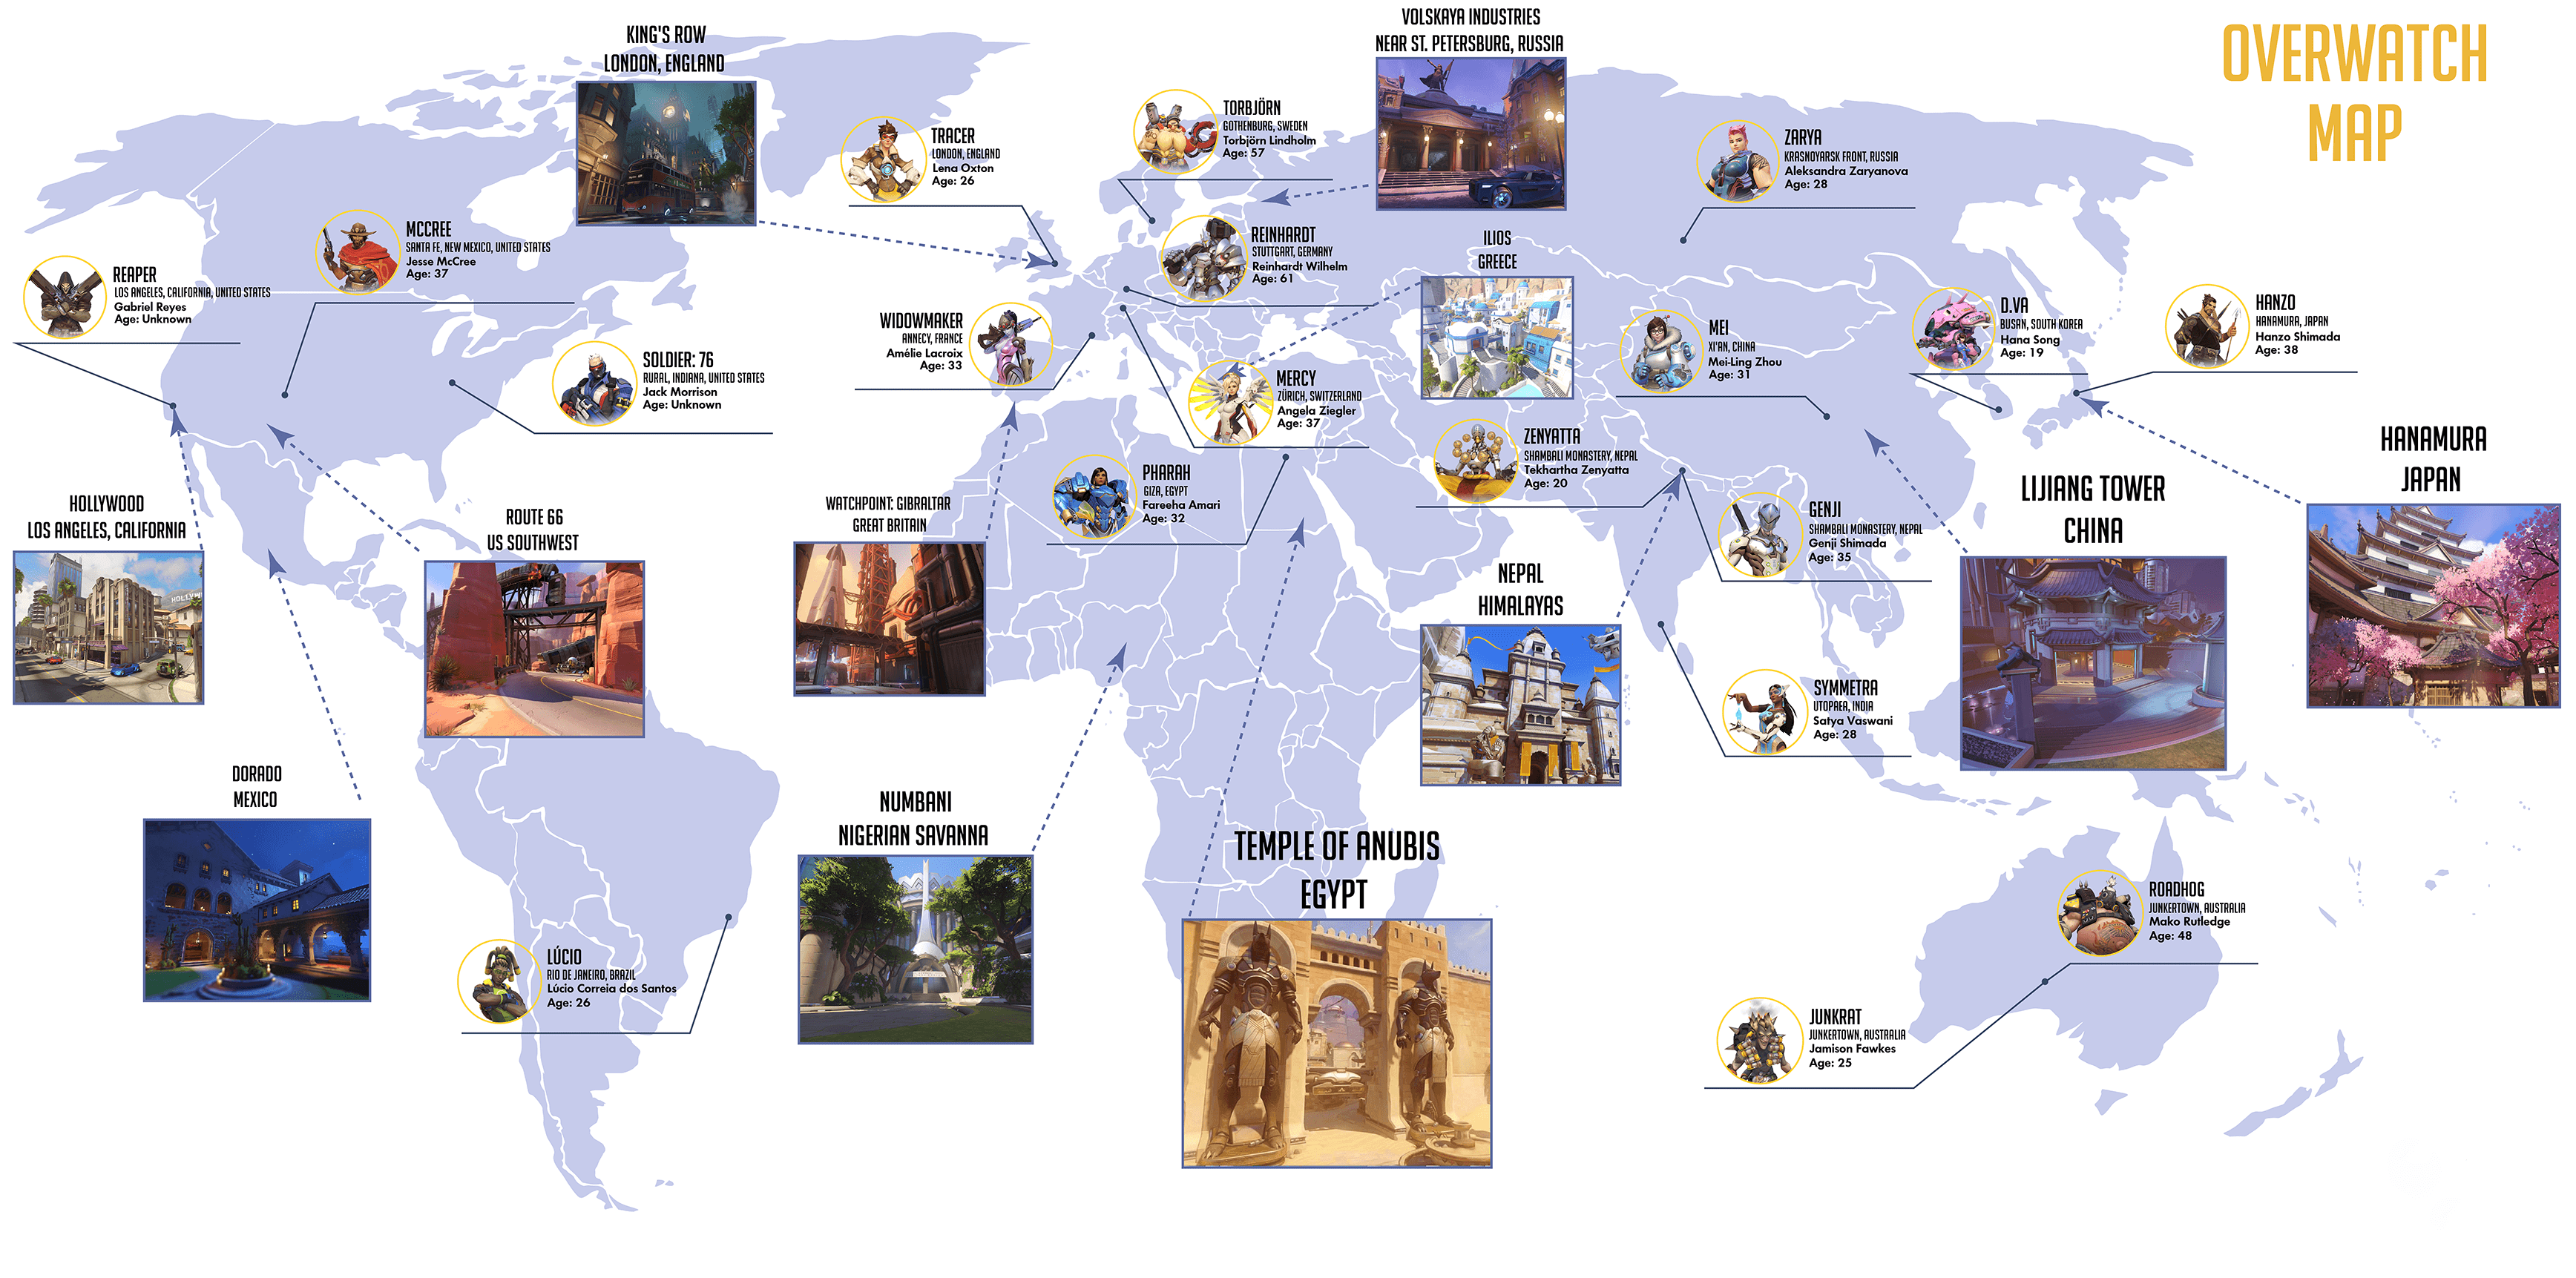 Here is the big Overwatch map | Overwatch in 2019 ... World Map Overwatch on world culture, world military, world atlas, world flag, world projection, world globe, world shipping lanes, world of warships, world glode, world wallpaper, world earth, world statistics, world wide web, world border, world travel, world hunger, world history, world records, world most beautiful nature, world war,